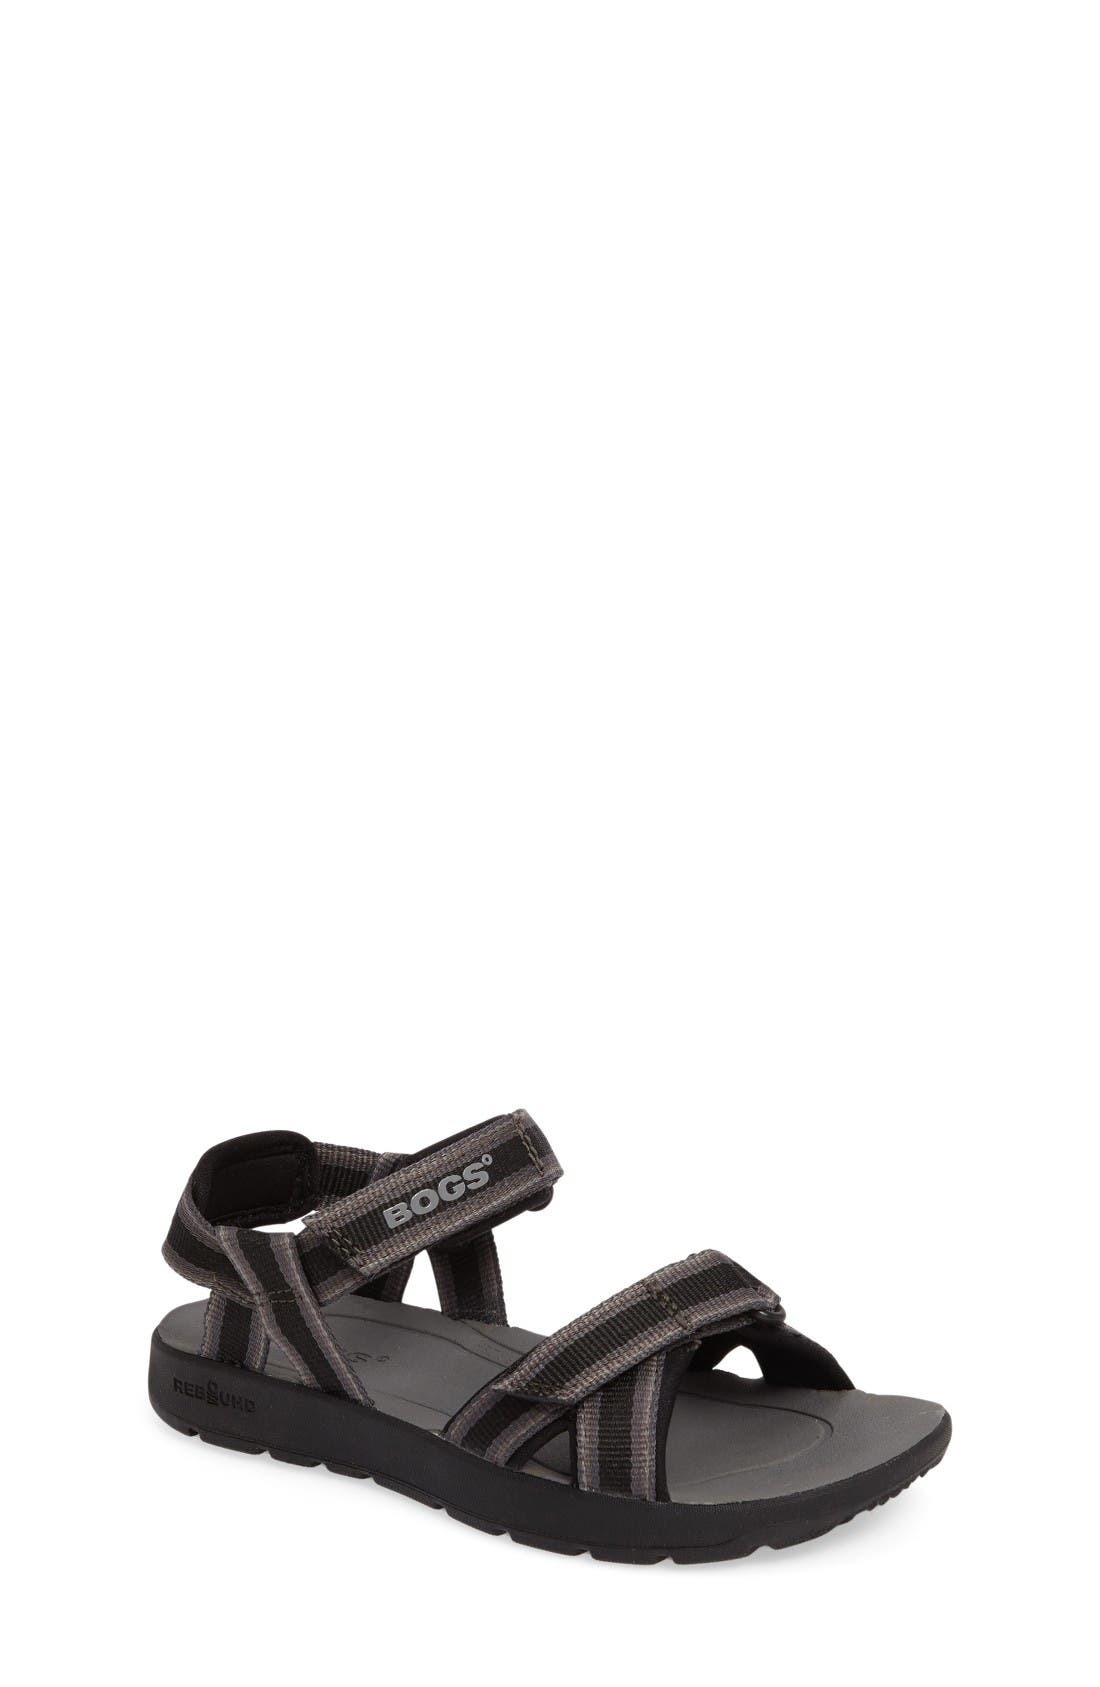 Bogs Rio Stripe Sandal (Toddler, Little Kid & Big Kid)